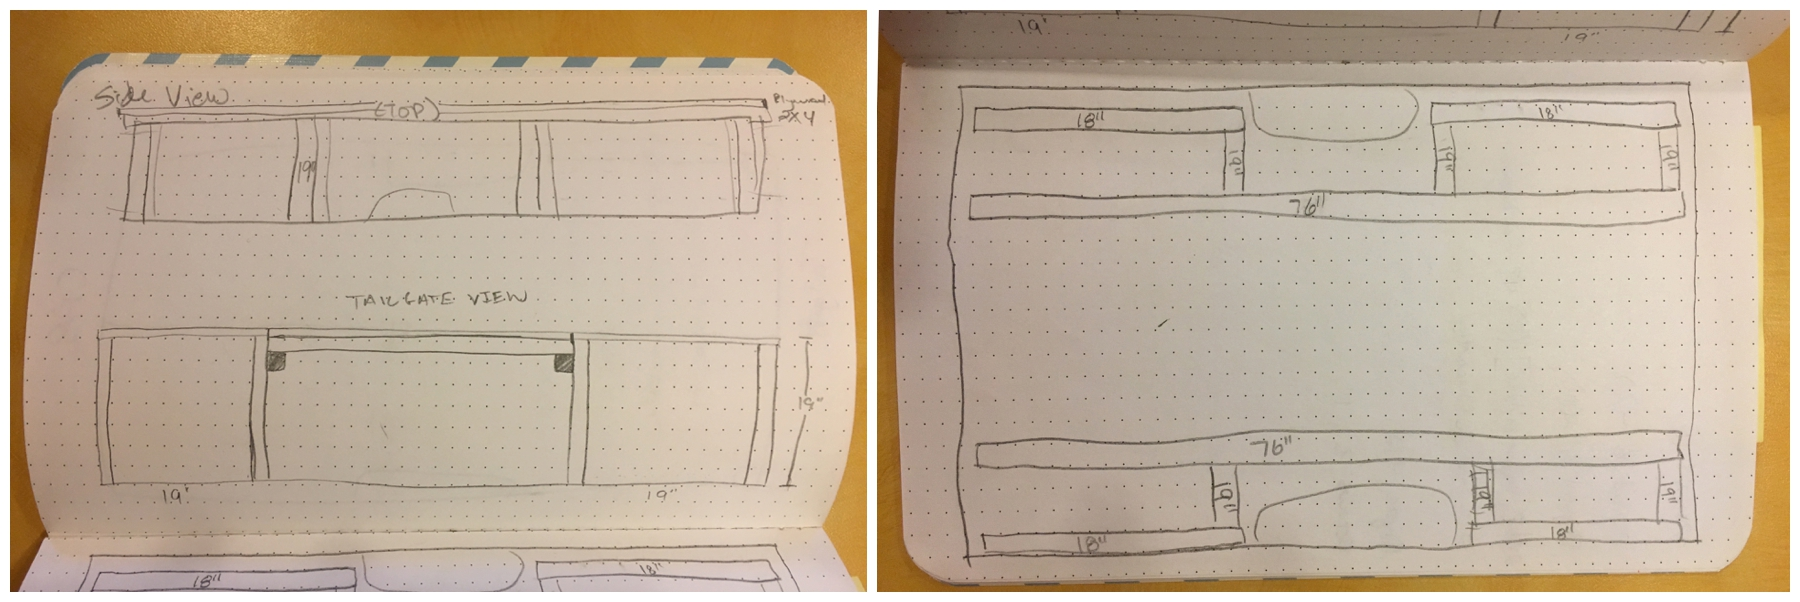 "Iphone shots of our ""plans""- side view and tailgate view on left, view from top on right..."